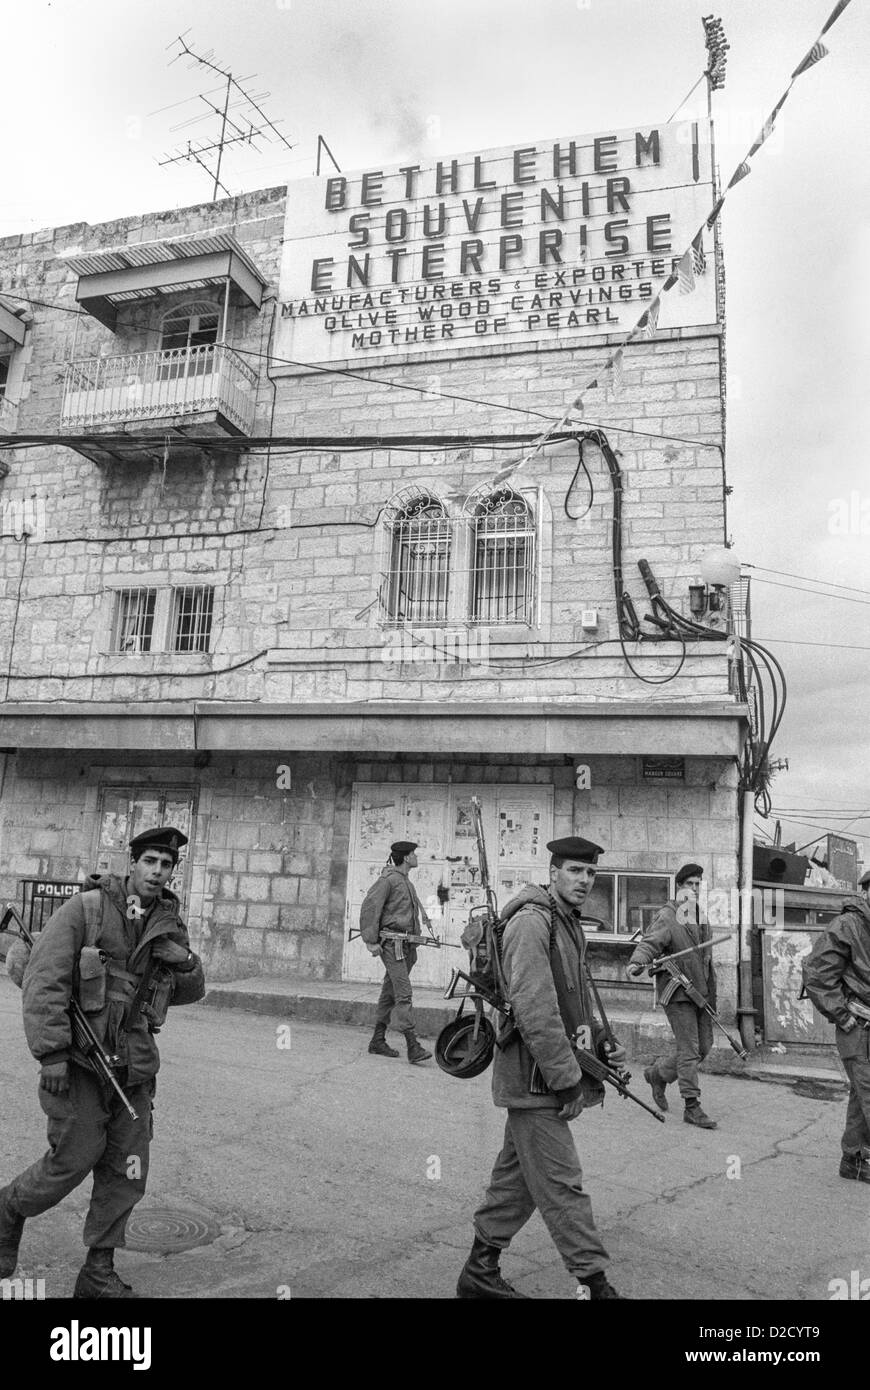 1988 Israeli Defense force patrolling Bethlehem at the start of the Palestinian Intifada. - Stock Image